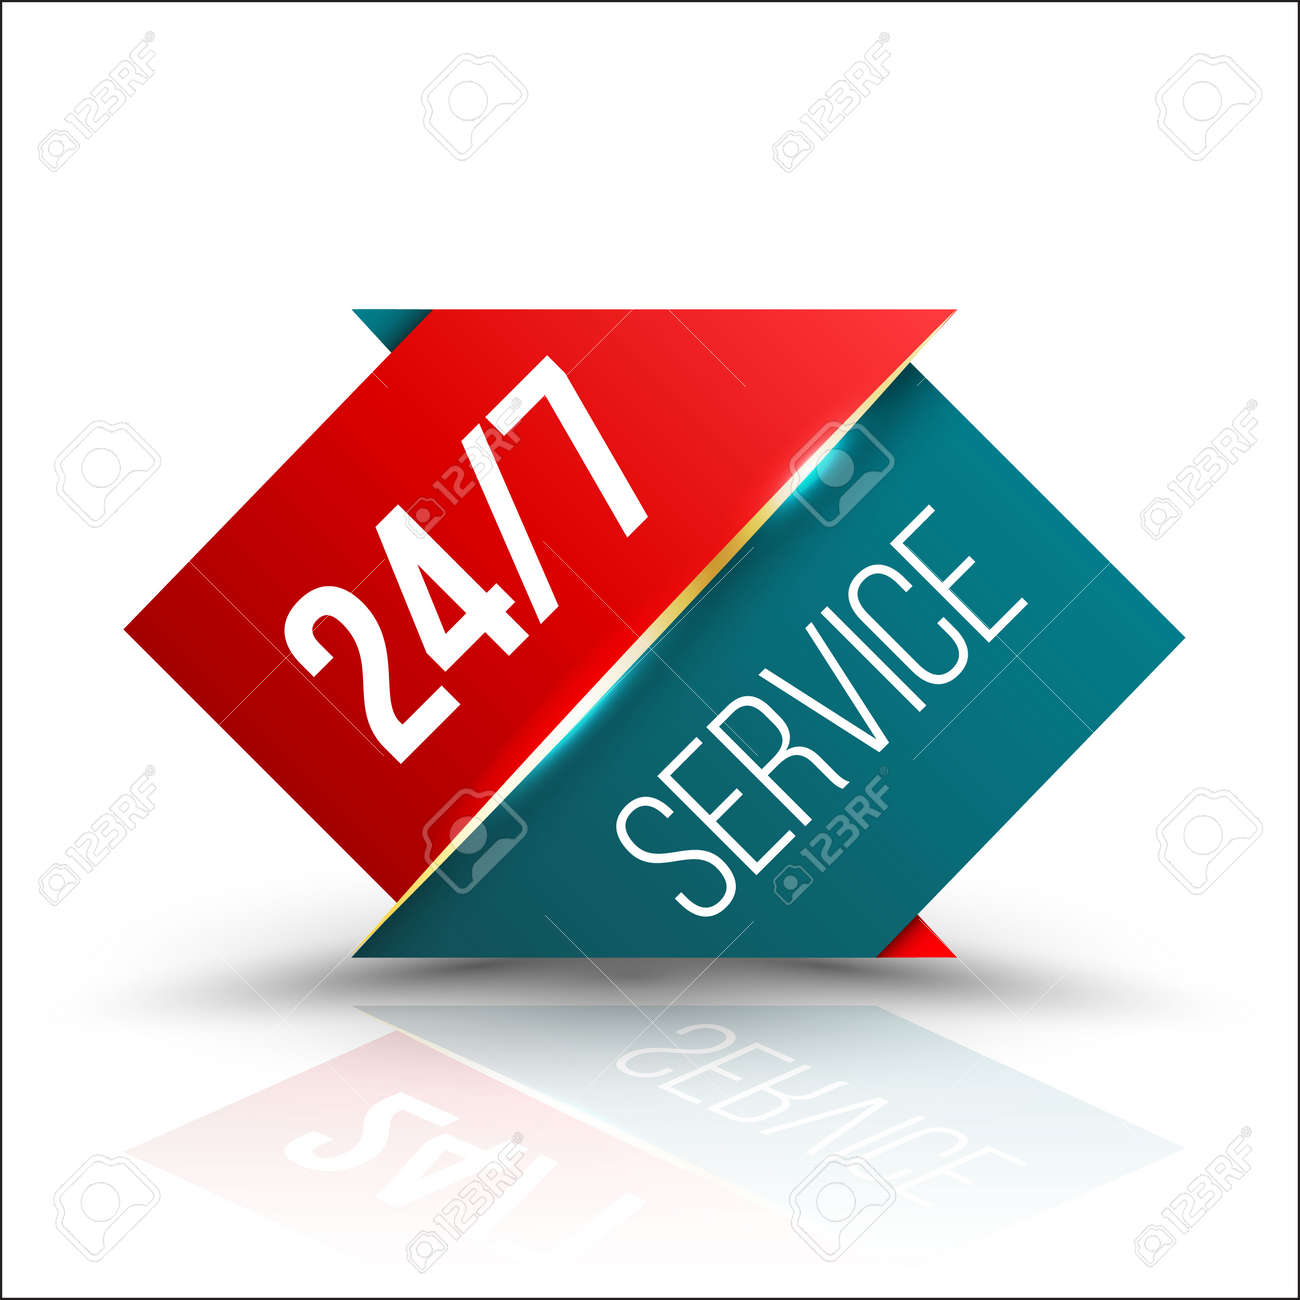 Arrow red green Service 24/7 Icon, Badge, Label or Sticker for Customer Service, Support or CRM Concept Isolated on White Background - 61413074